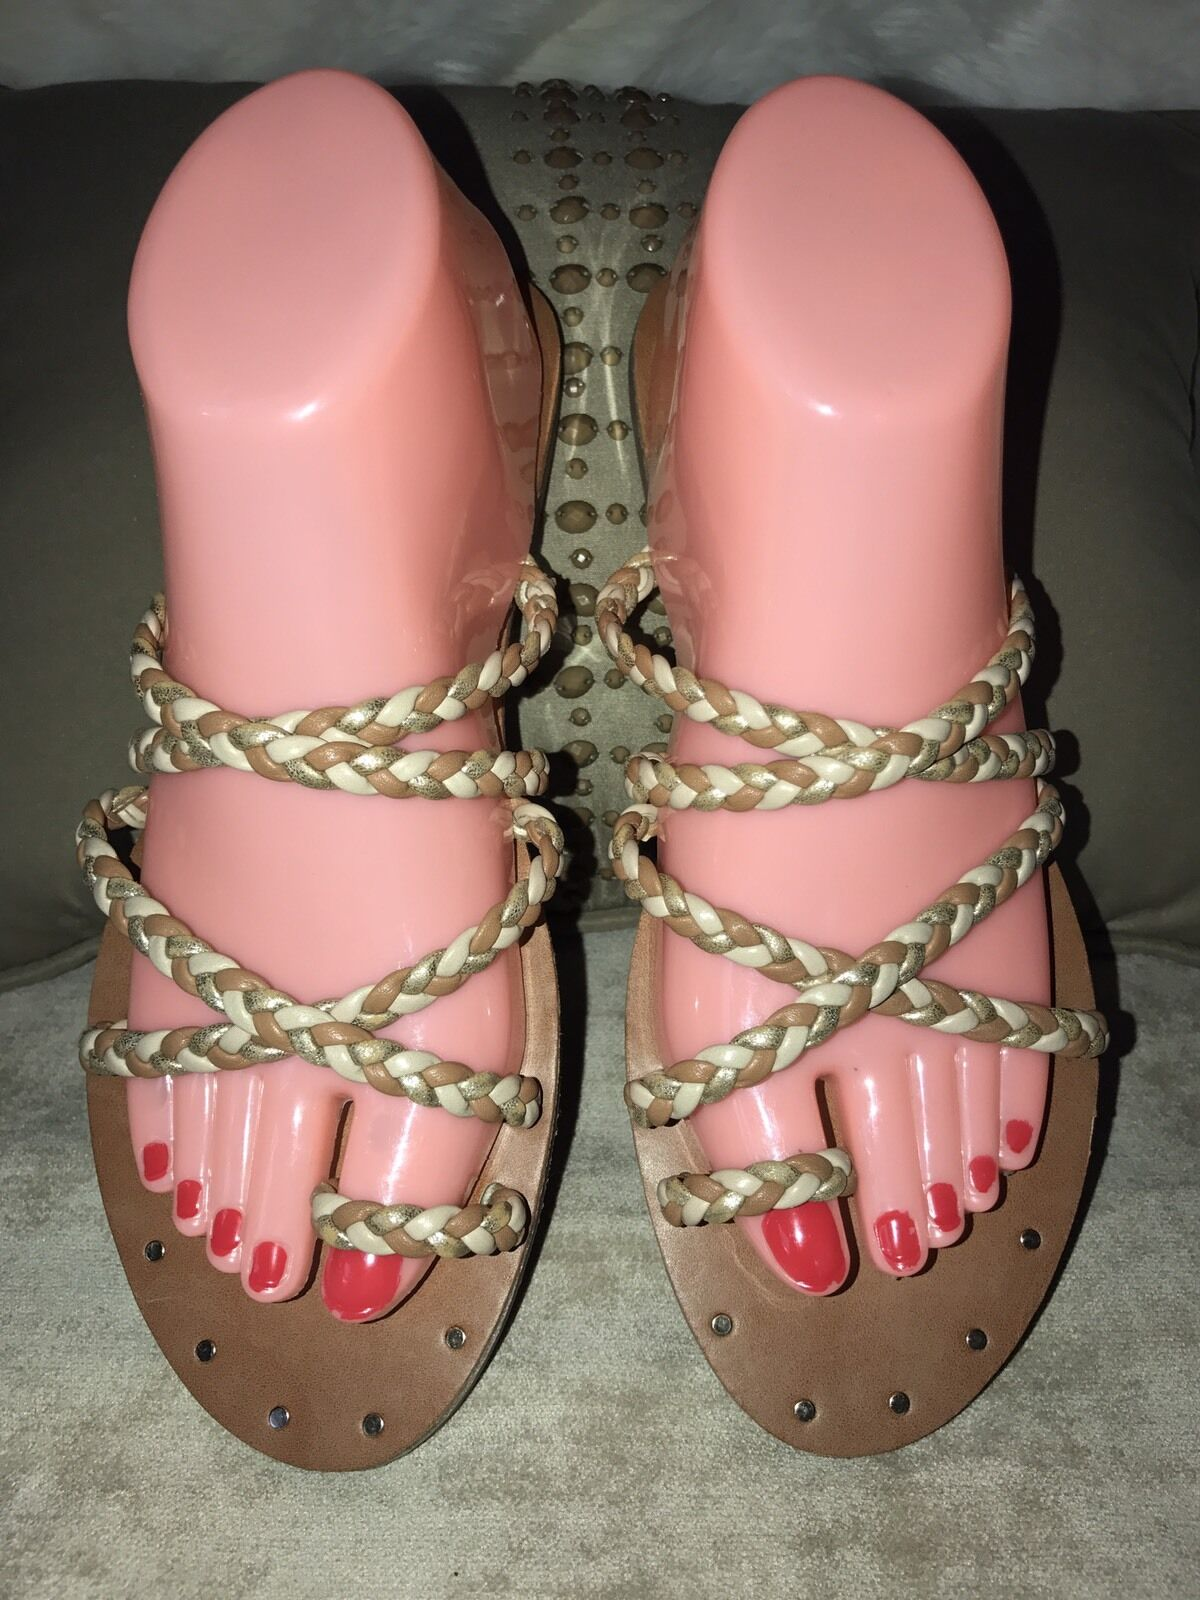 Mossimo Toe Ring Strappy Braided Flat Size Sandals Women Two Tone Size Flat 8.5 New 58c7d0